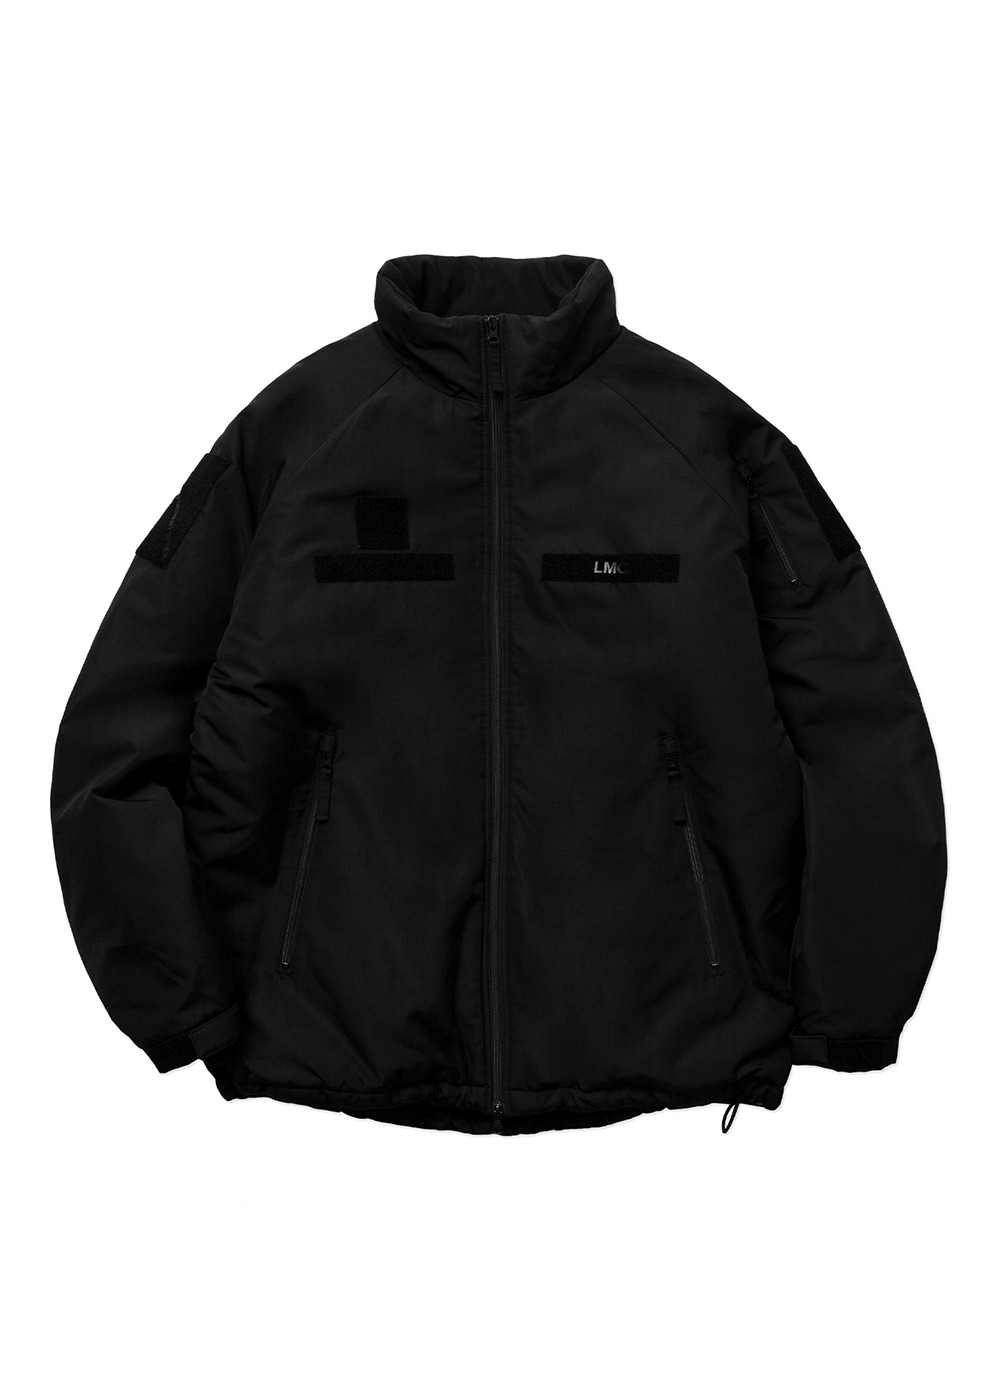 LMC LEVEL7 THINSULATE PARKA black